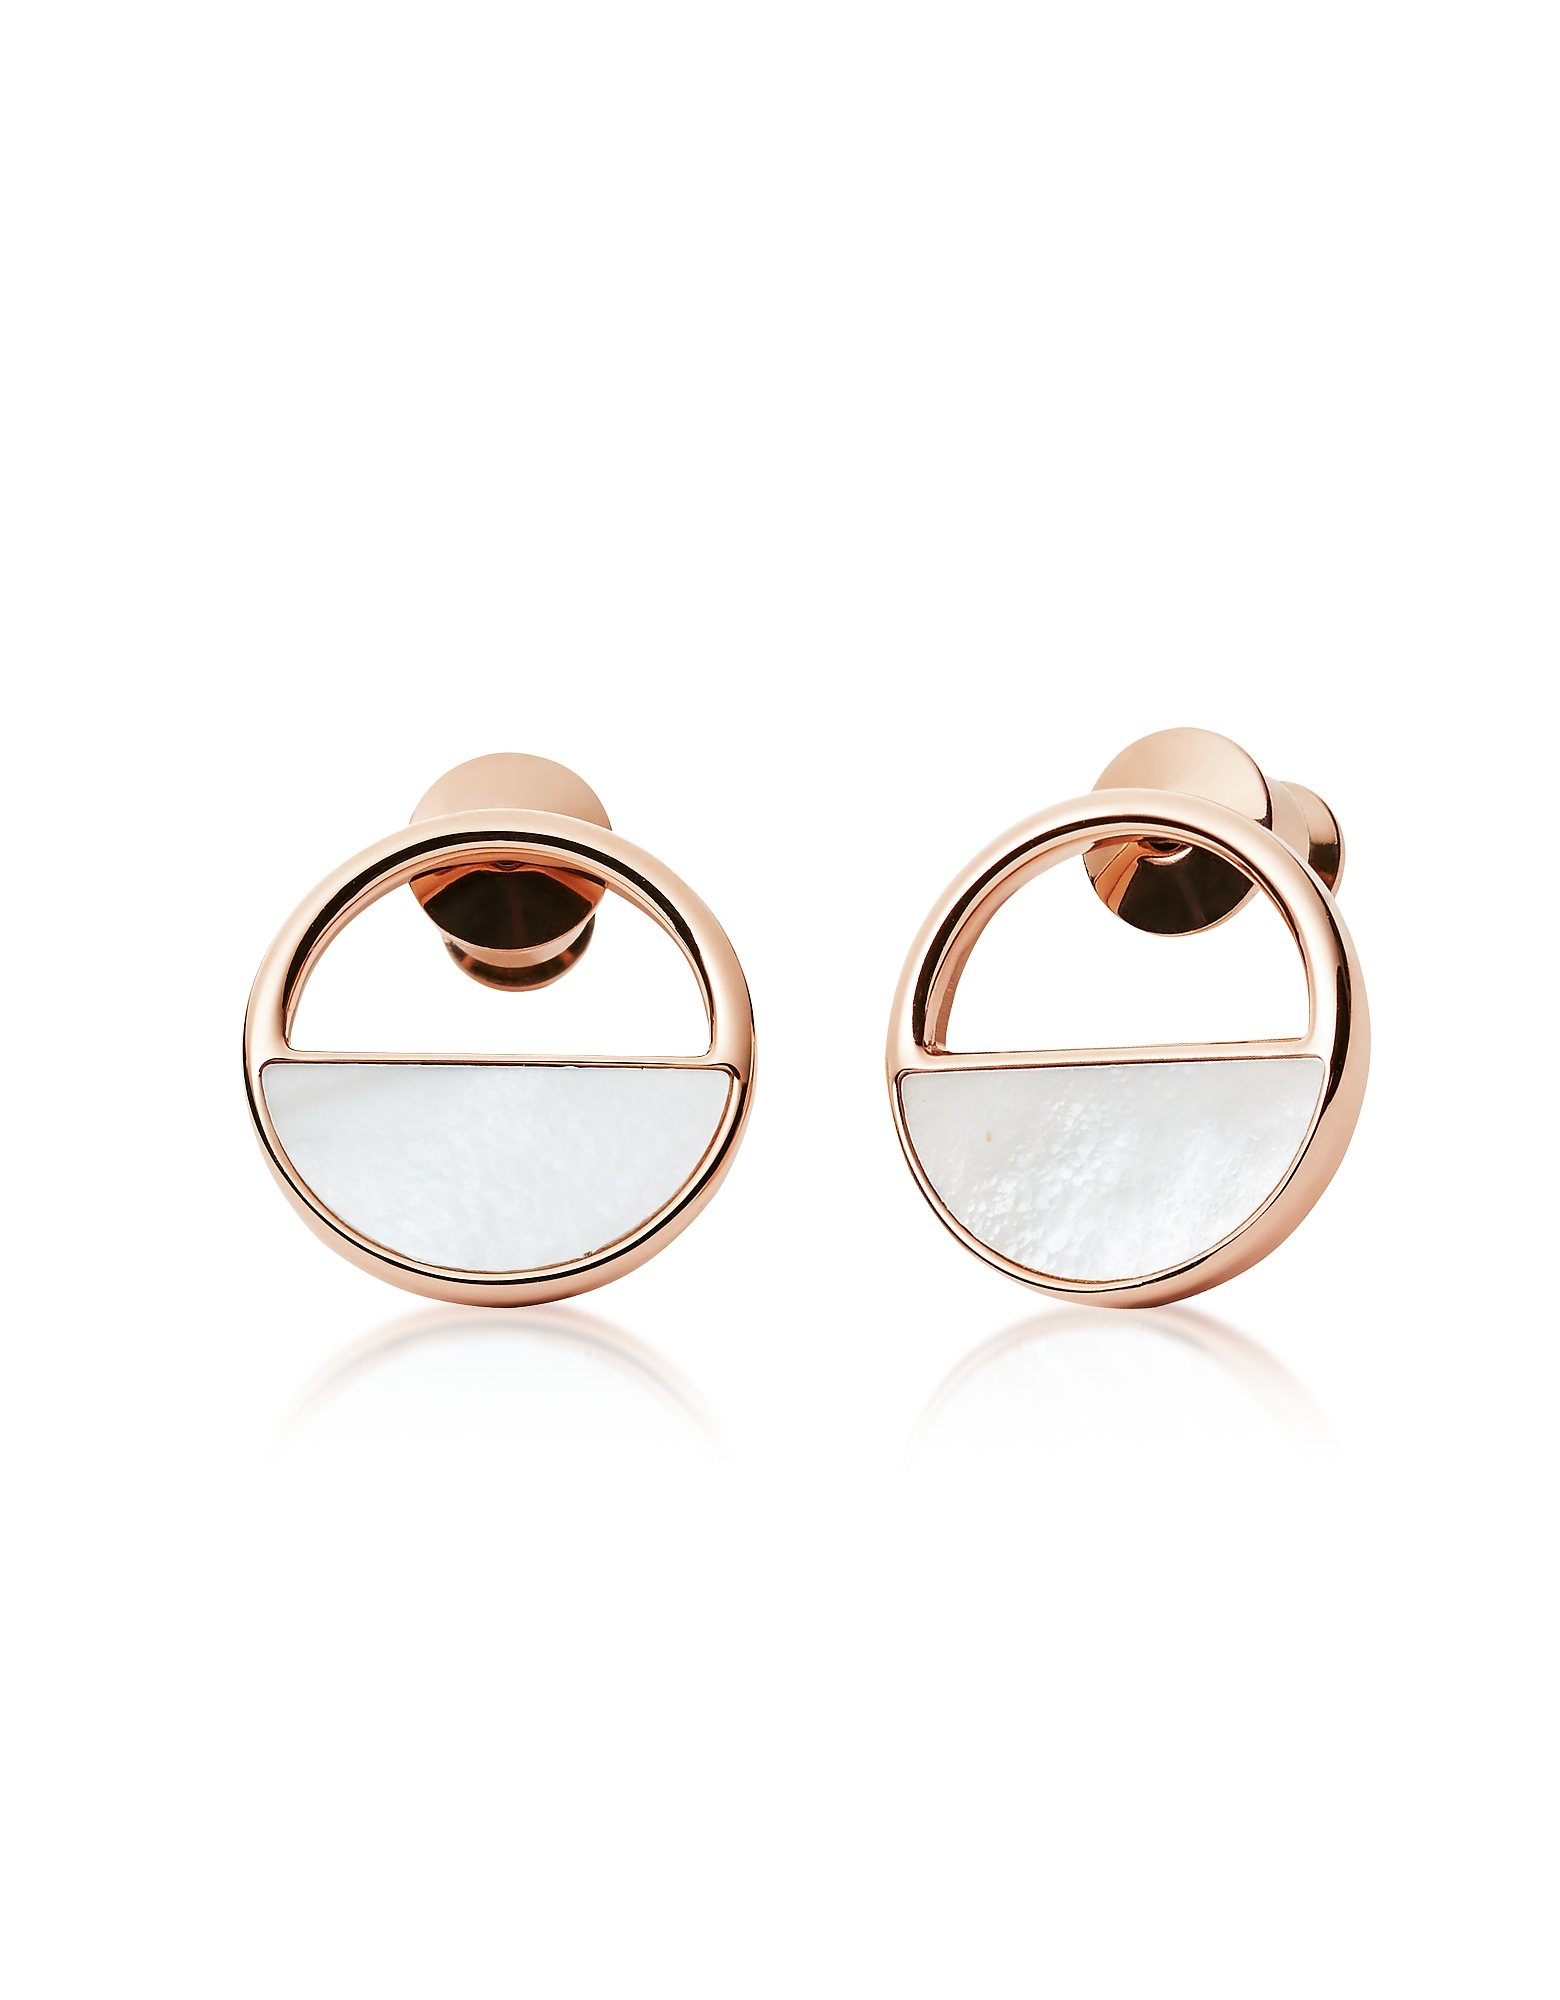 Skagen Earrings, Elin Rose Gold-Tone Stud Earrings